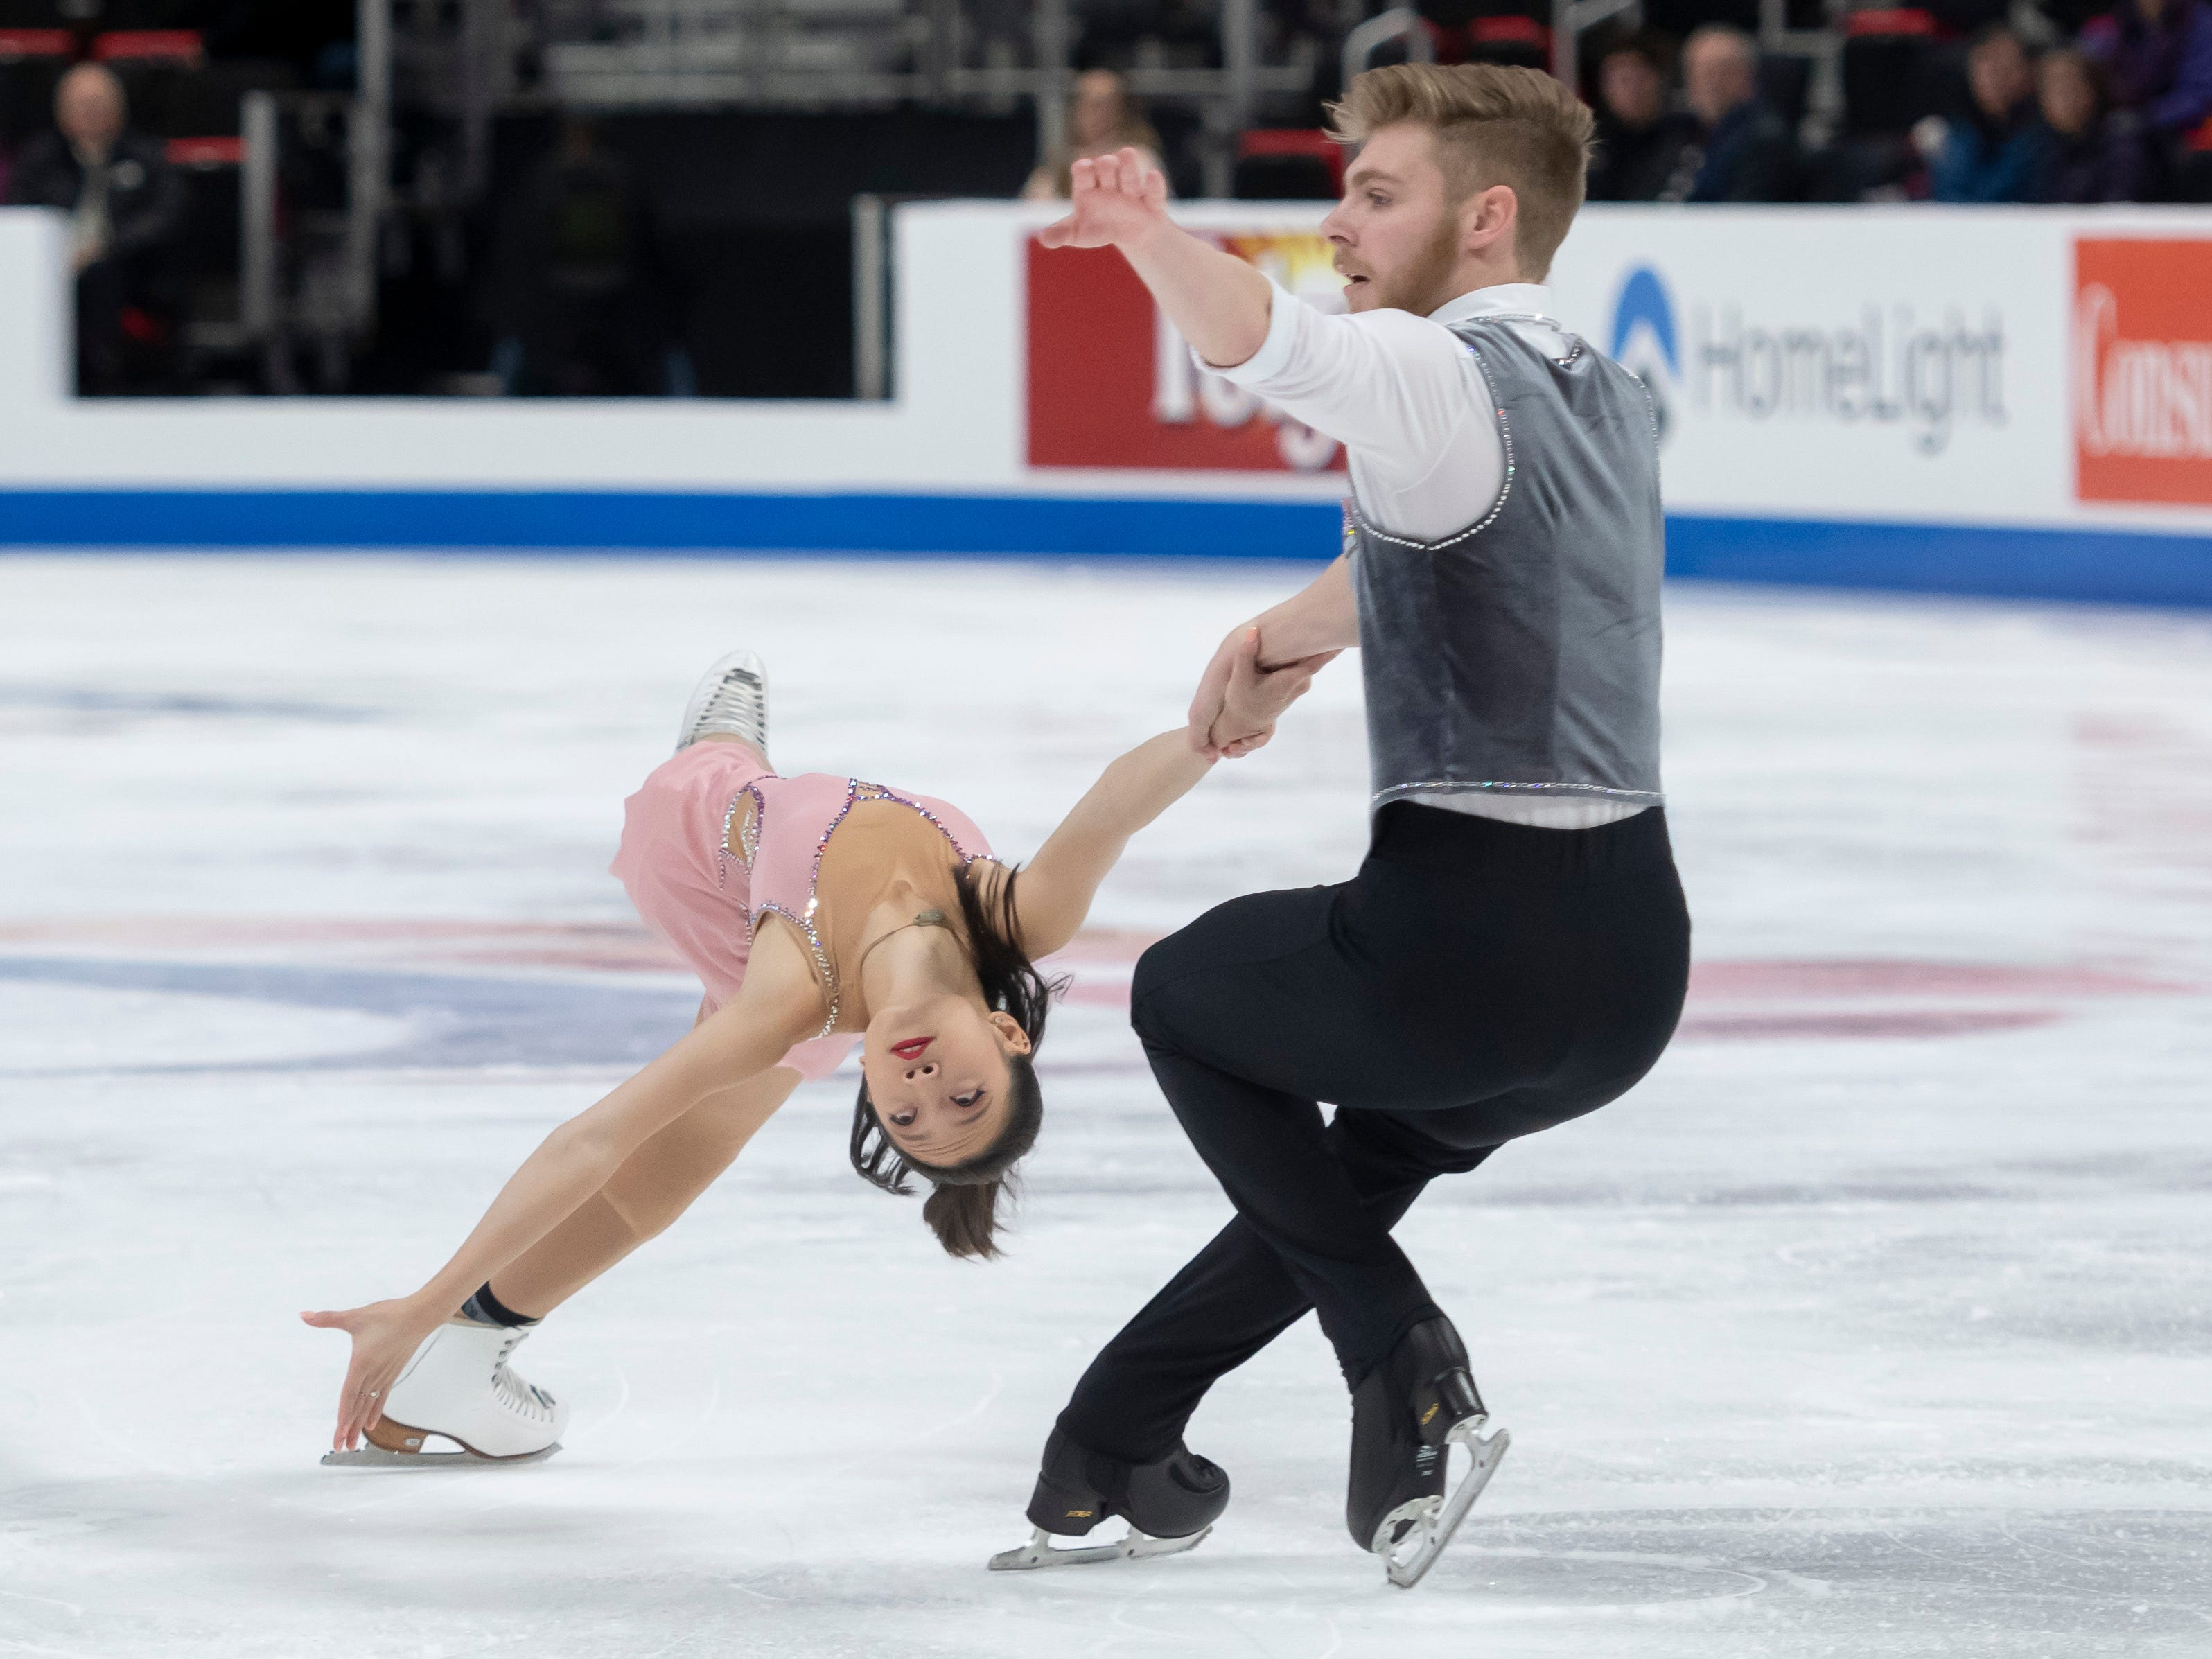 Chelsea Liu and Ian Meyh compete in the senior pairs short program at the U.S. Figure Skating Championships.